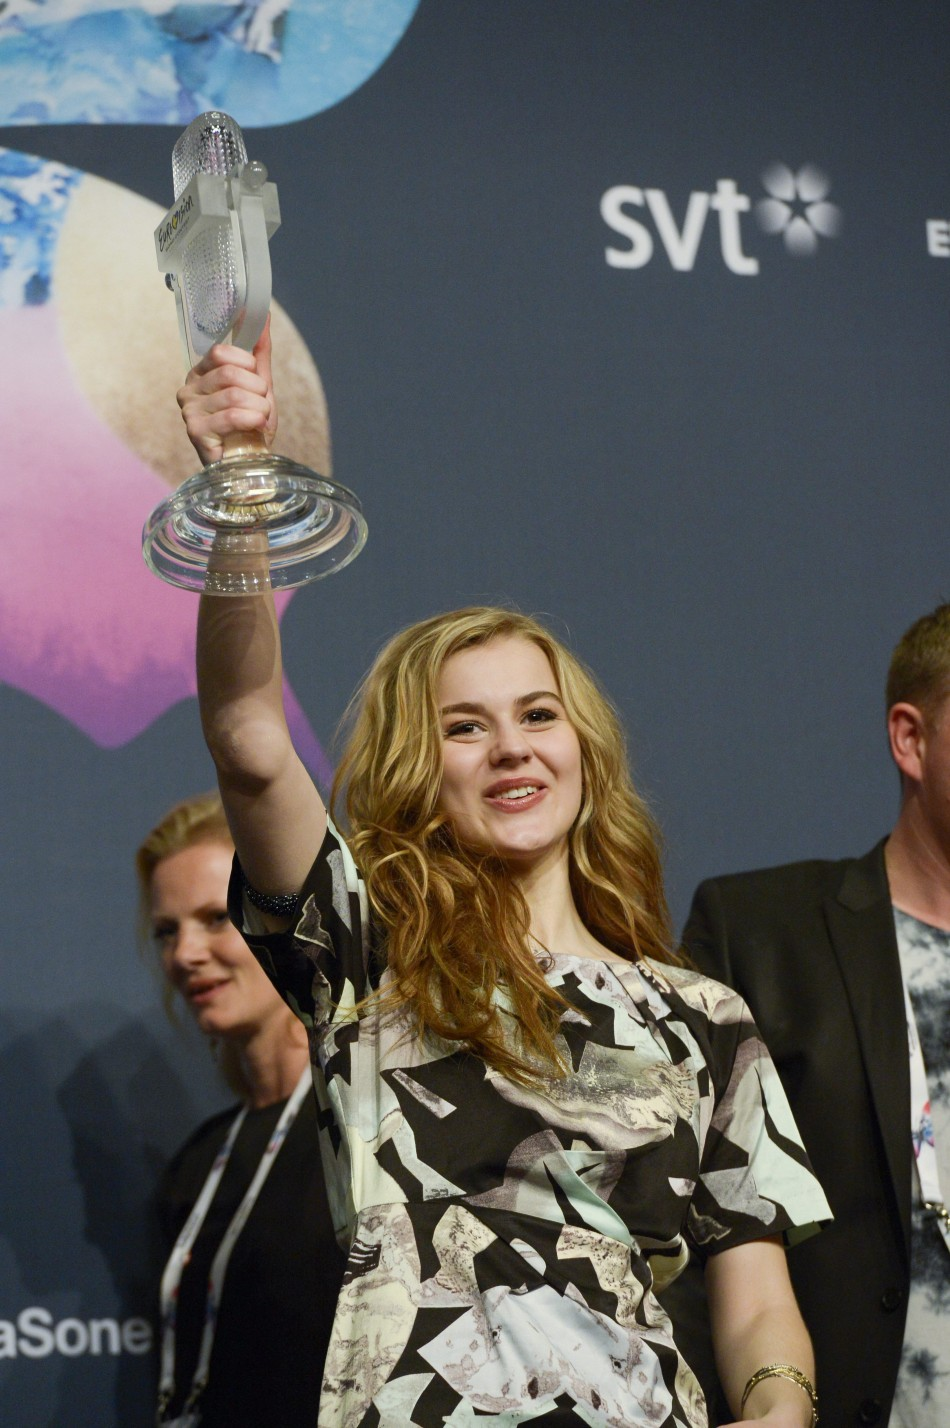 Denmarks Emmelie De Forest holds her trophy after winning the 2013 Eurovision Song Contest with her song Only Teardrops during the finals of the contest held at the Malmo Opera Hall in Malmo May 18, 2013.